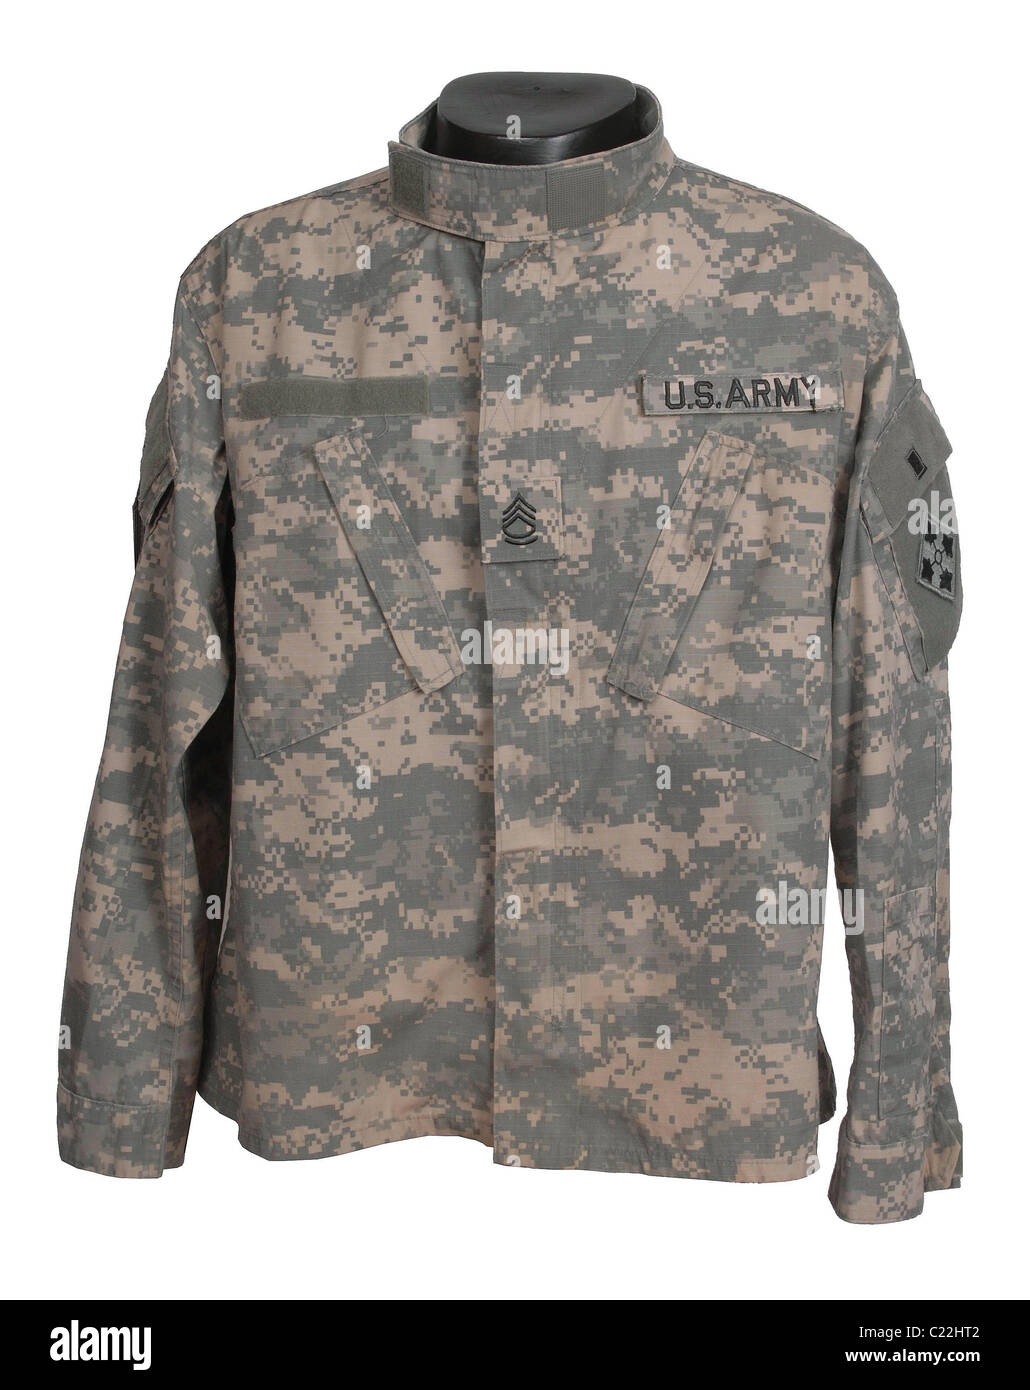 Universal Camouflage Pattern (UCP), also referred to as ACU Army Combat Uniform camouflage tunic used in Afghanistan - Stock Image